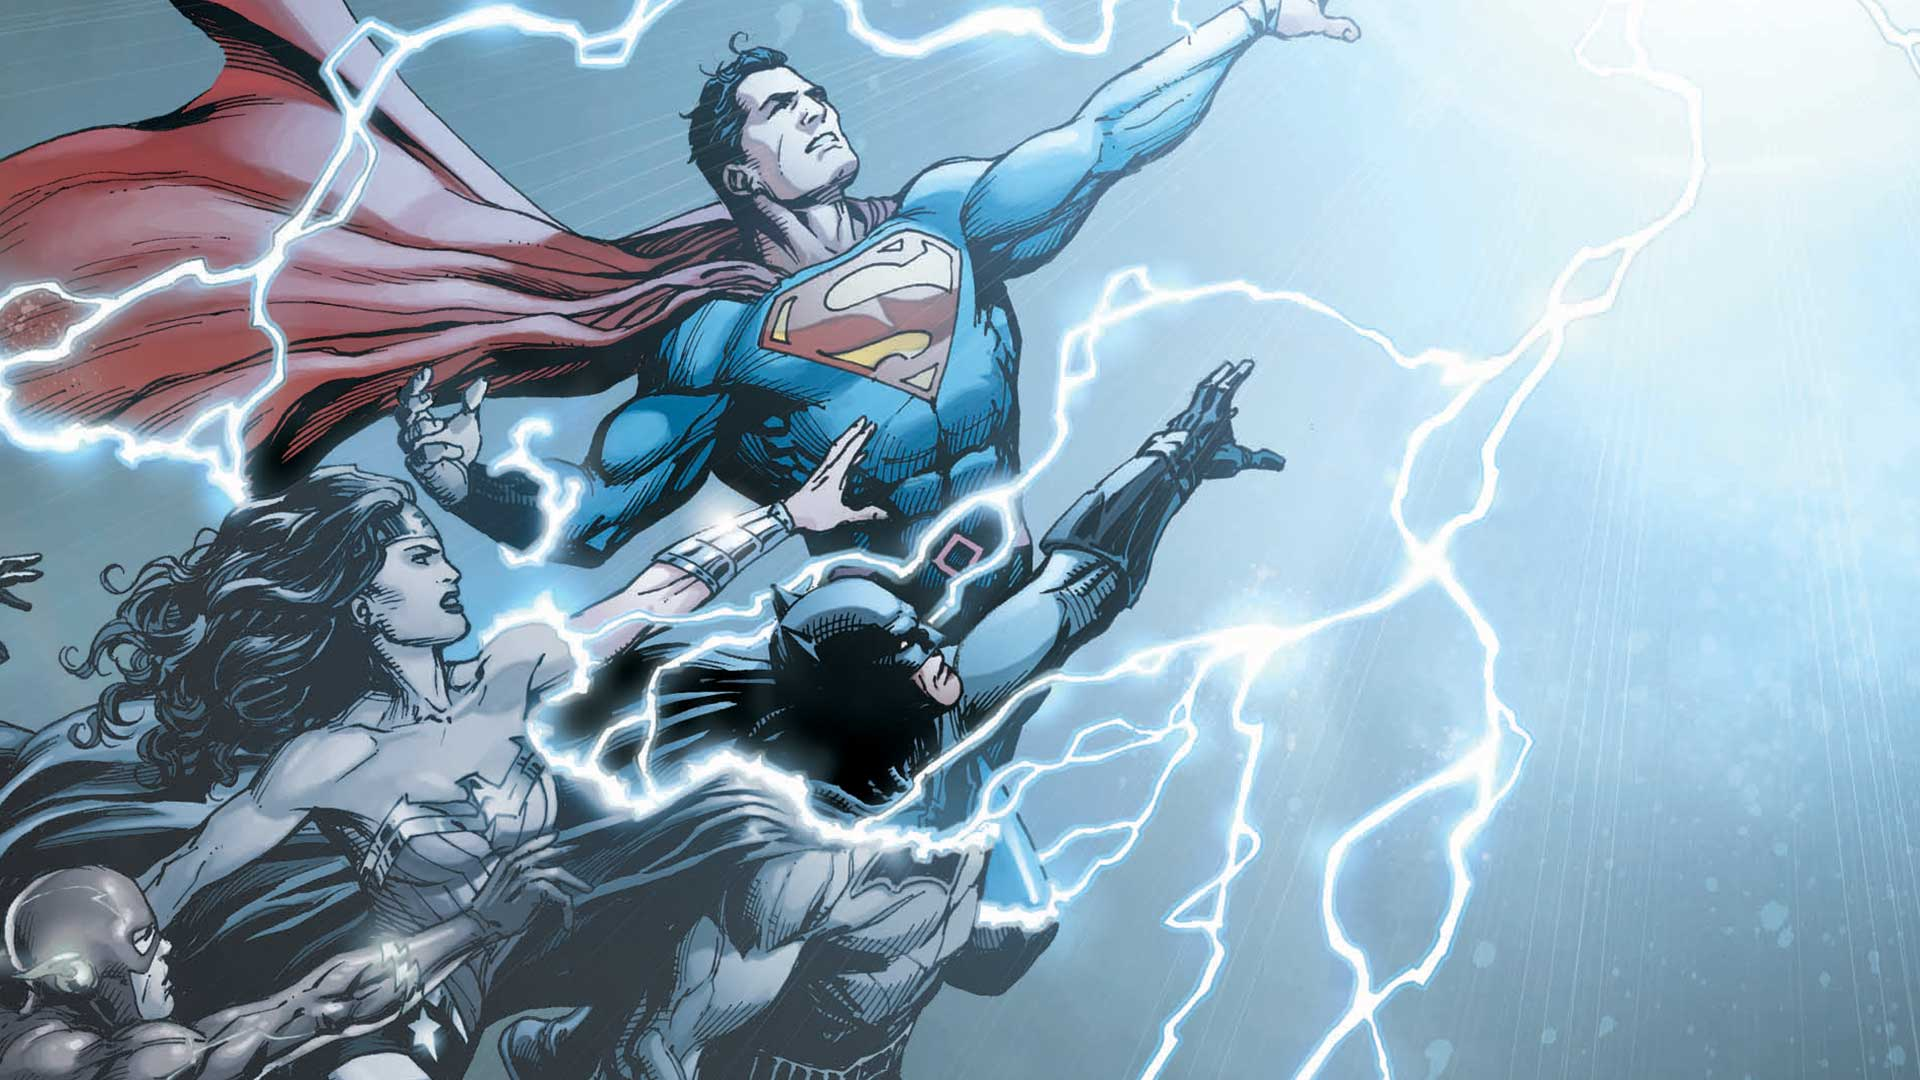 Art for DC Universe: Rebirth No. 1